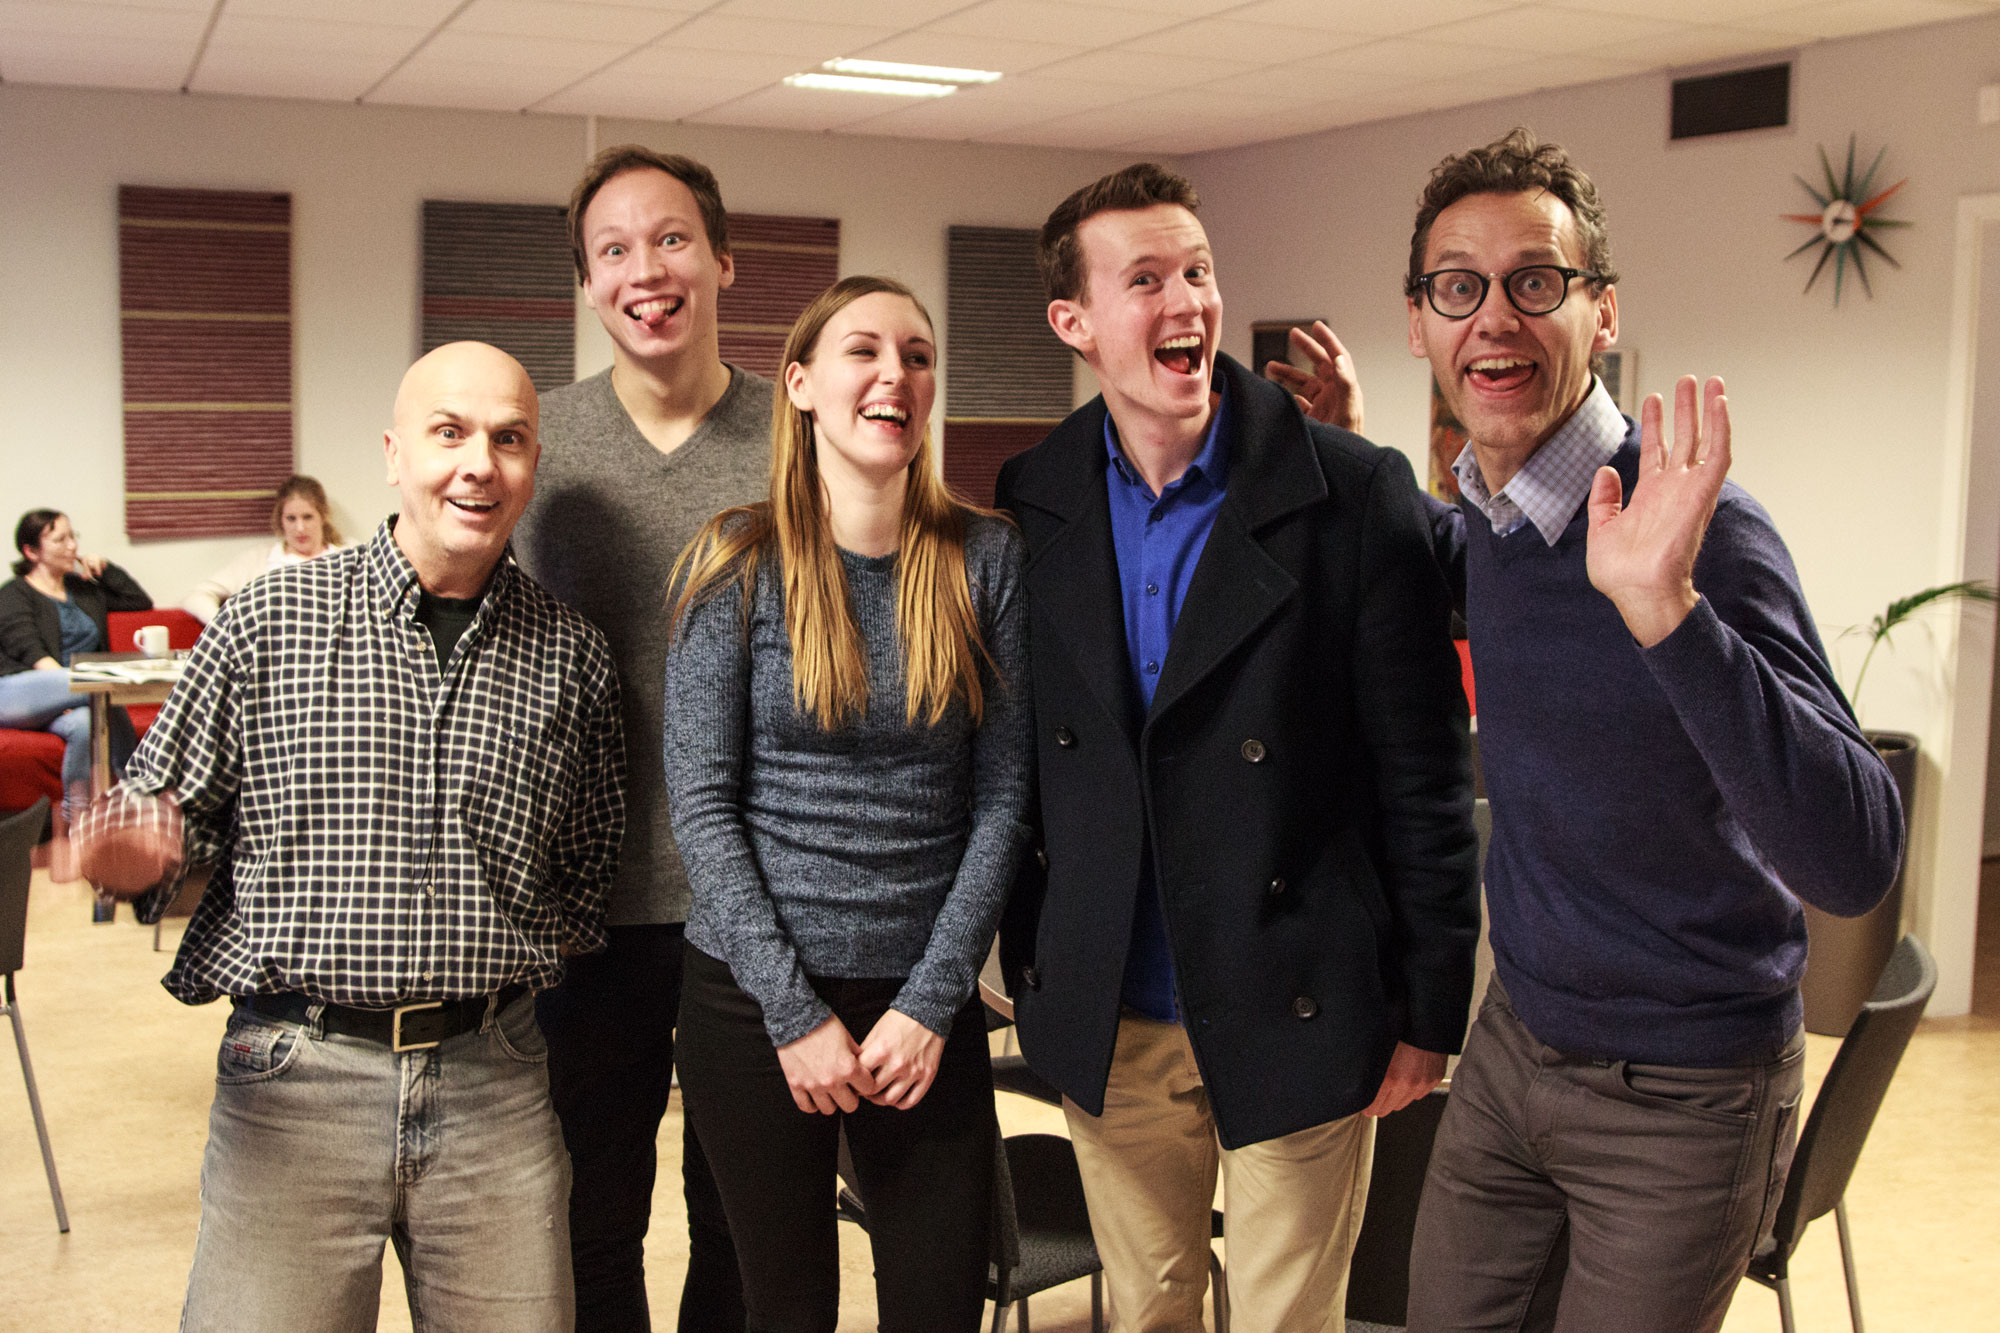 From left to right: Glenn, Hampus, Matilda, Daniel and Samuel. No, we are not this crazy all the time. Or are we?